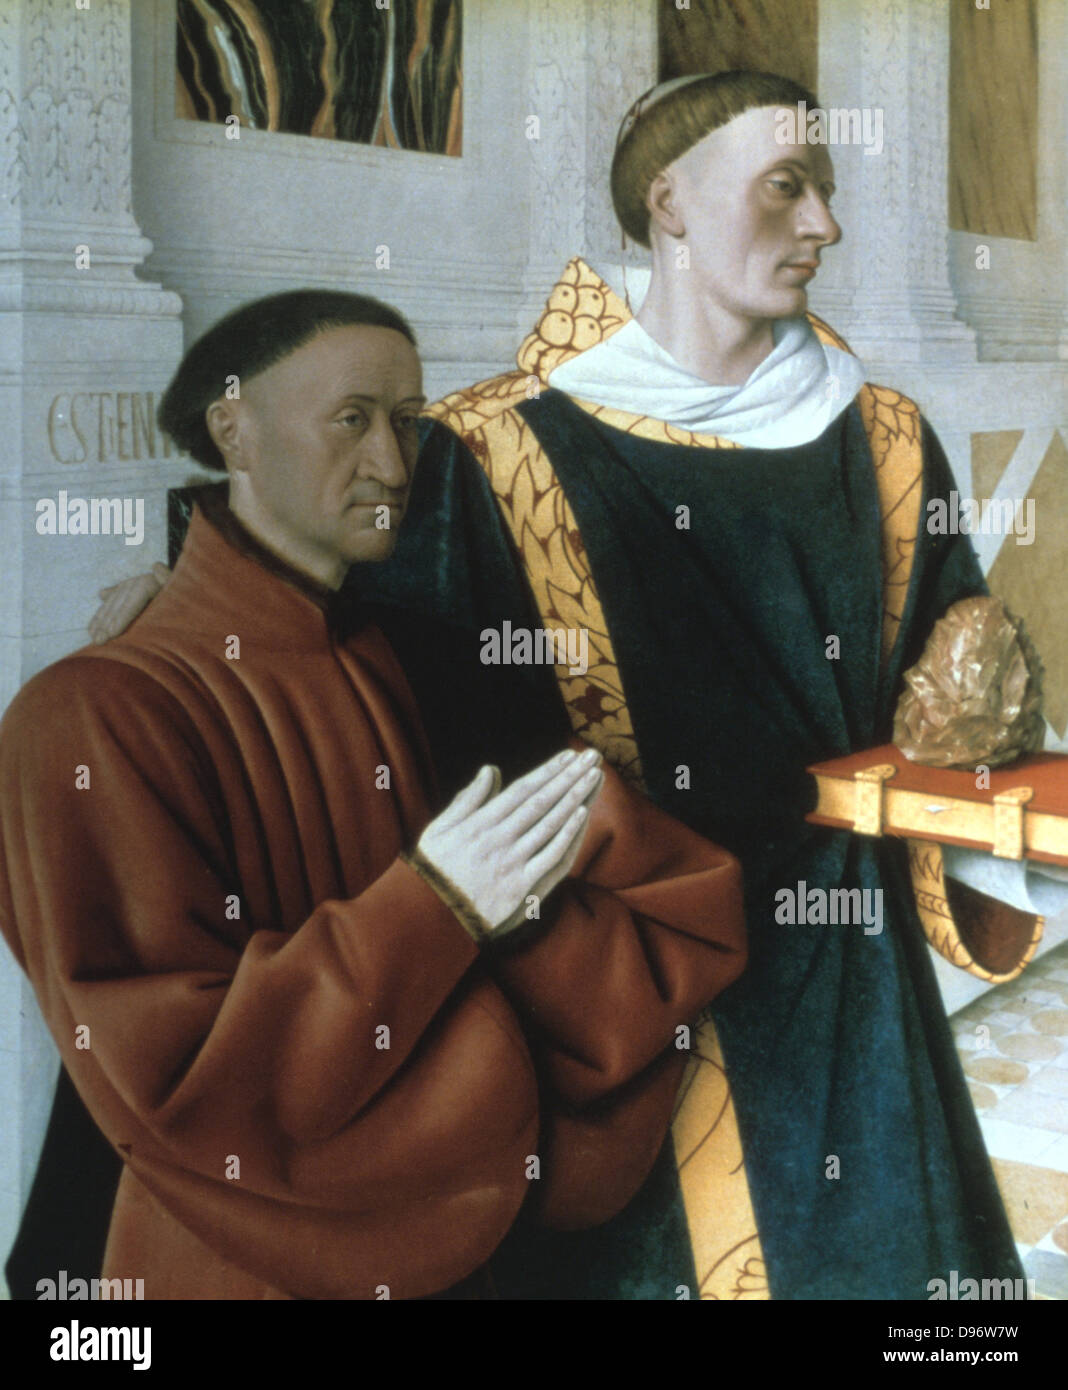 Etienne Chevalier and Saint Stephen' 1450: Jean Fouquet (1420-1481) French painter. - Stock Image